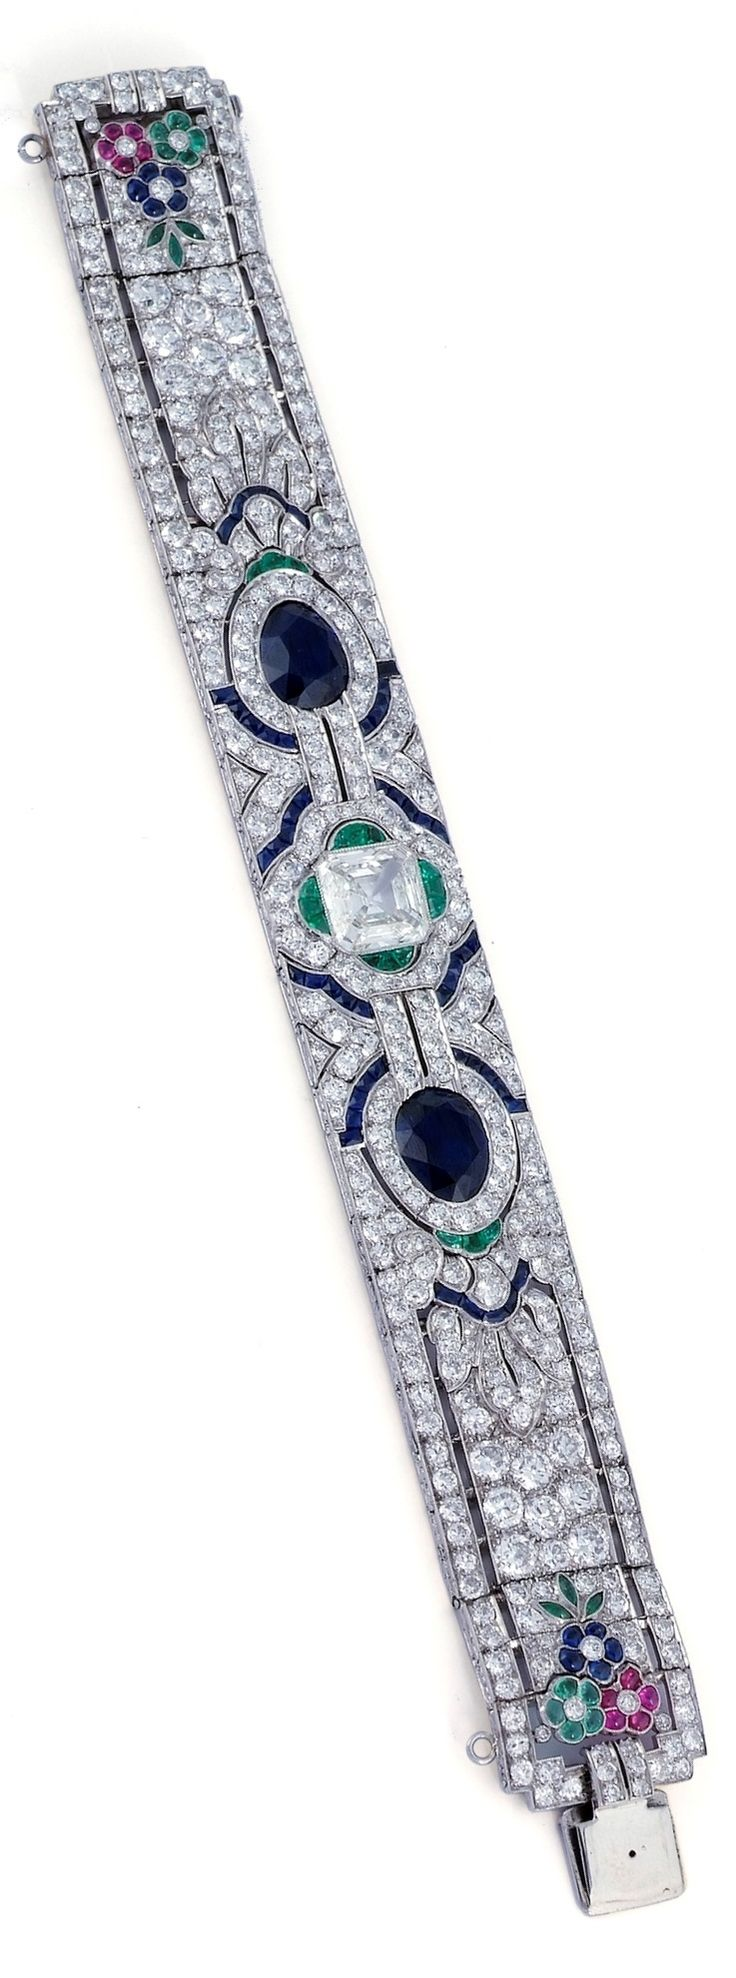 GATTLE - An Art Deco emerald, sapphire and diamond bracelet, circa 1929. Designed as a central emerald-cut diamond weighing 3.73 carats, flanked by two pear-shaped sapphires weighing 8.45 carats, within a pavé-set diamond band with calibré-cut emerald and sapphire accents, embellished to each end with a cabochon gem-set floral cluster, signed Gattle, made by Oscar Heyman. #Gattle #OscarHeyman #ArtDeco #bracelet